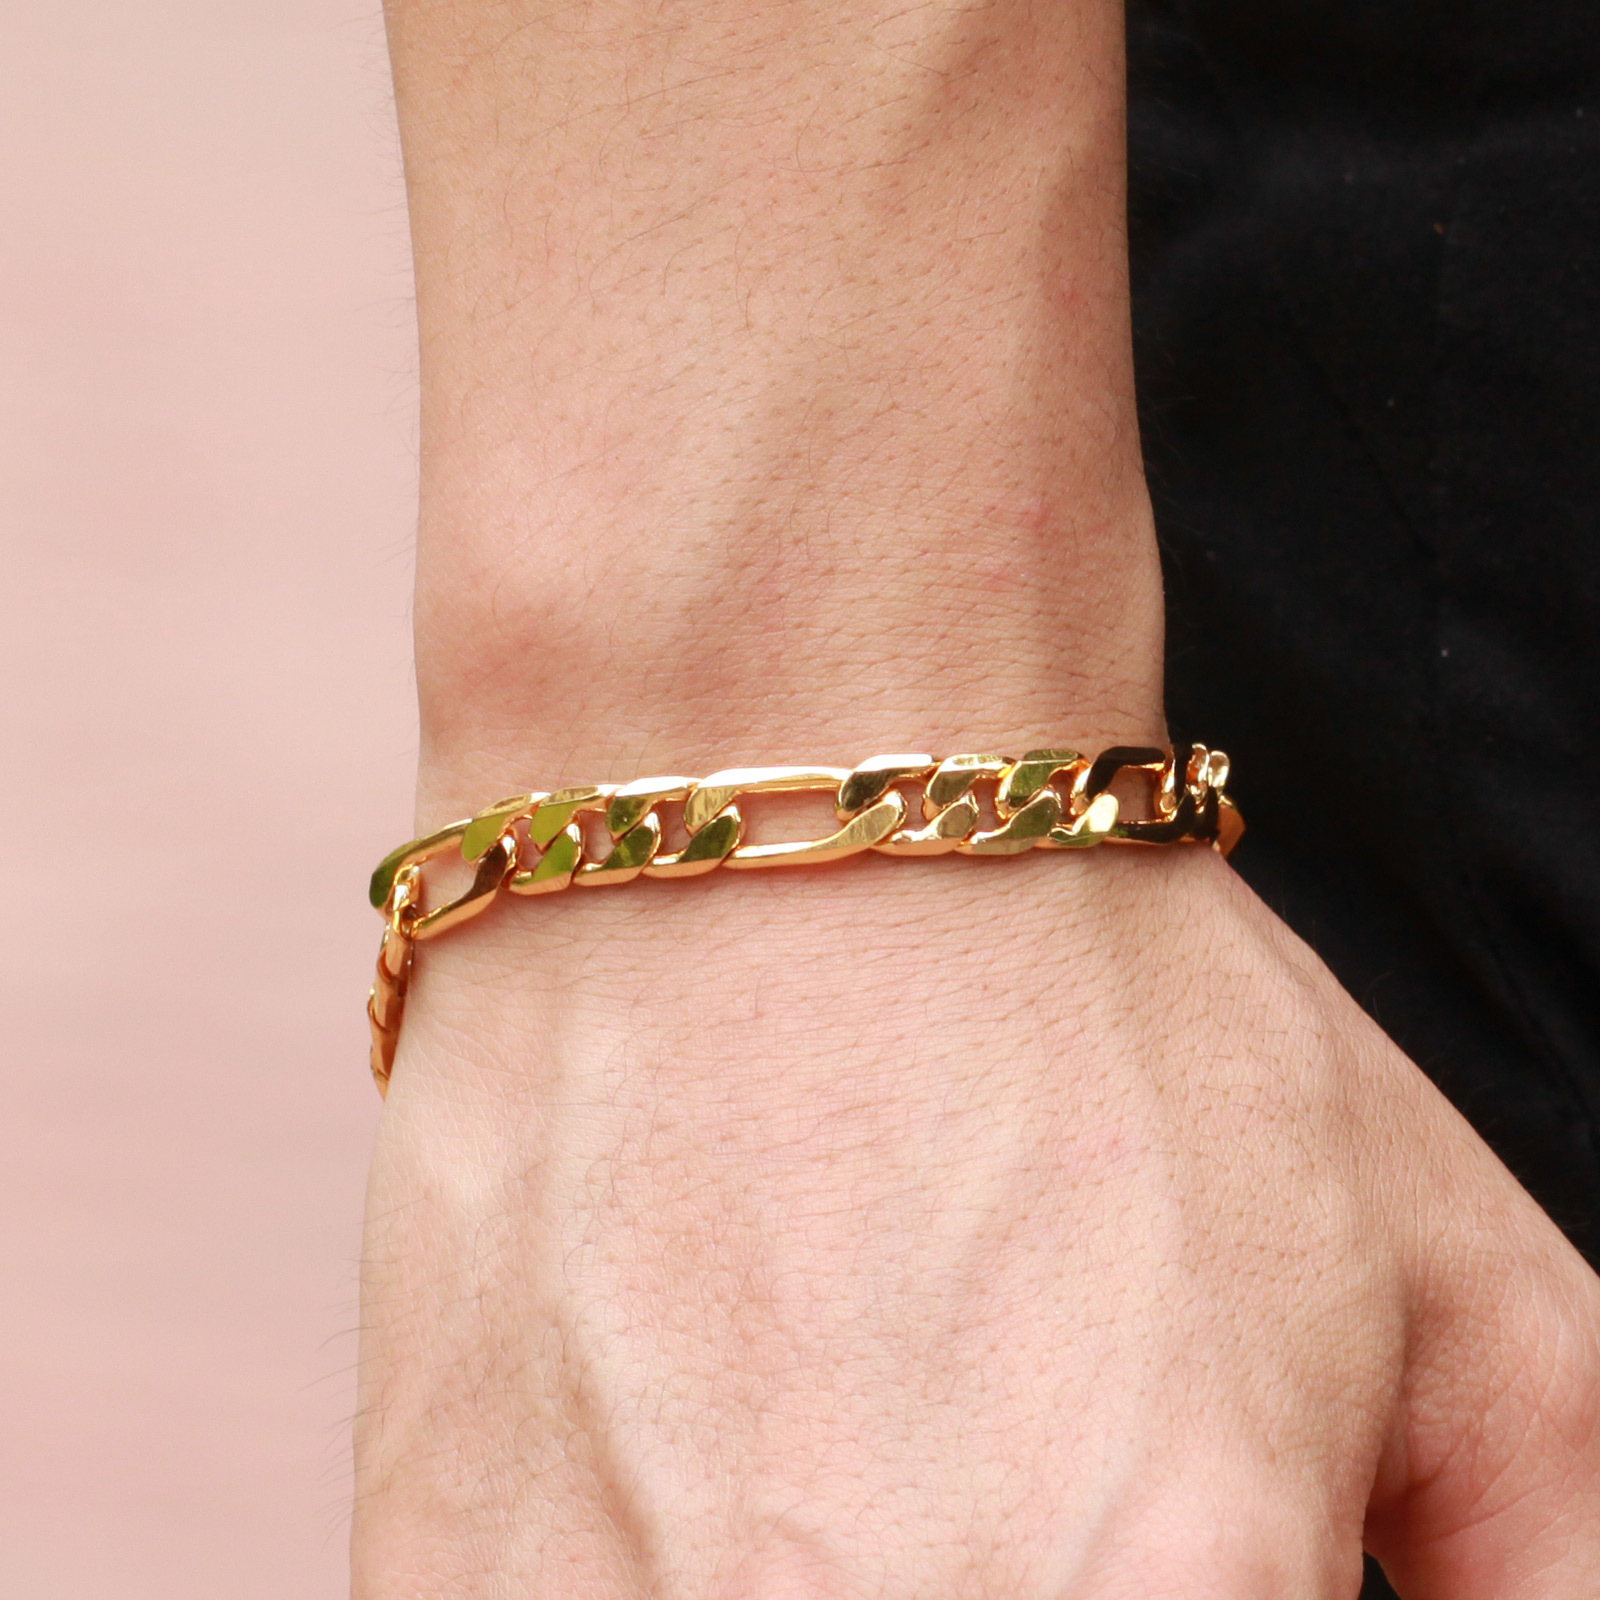 18 Karat Gold Jewelry Ks157 Men S Personality In Chain Link Bracelets From Accessories On Aliexpress Alibaba Group